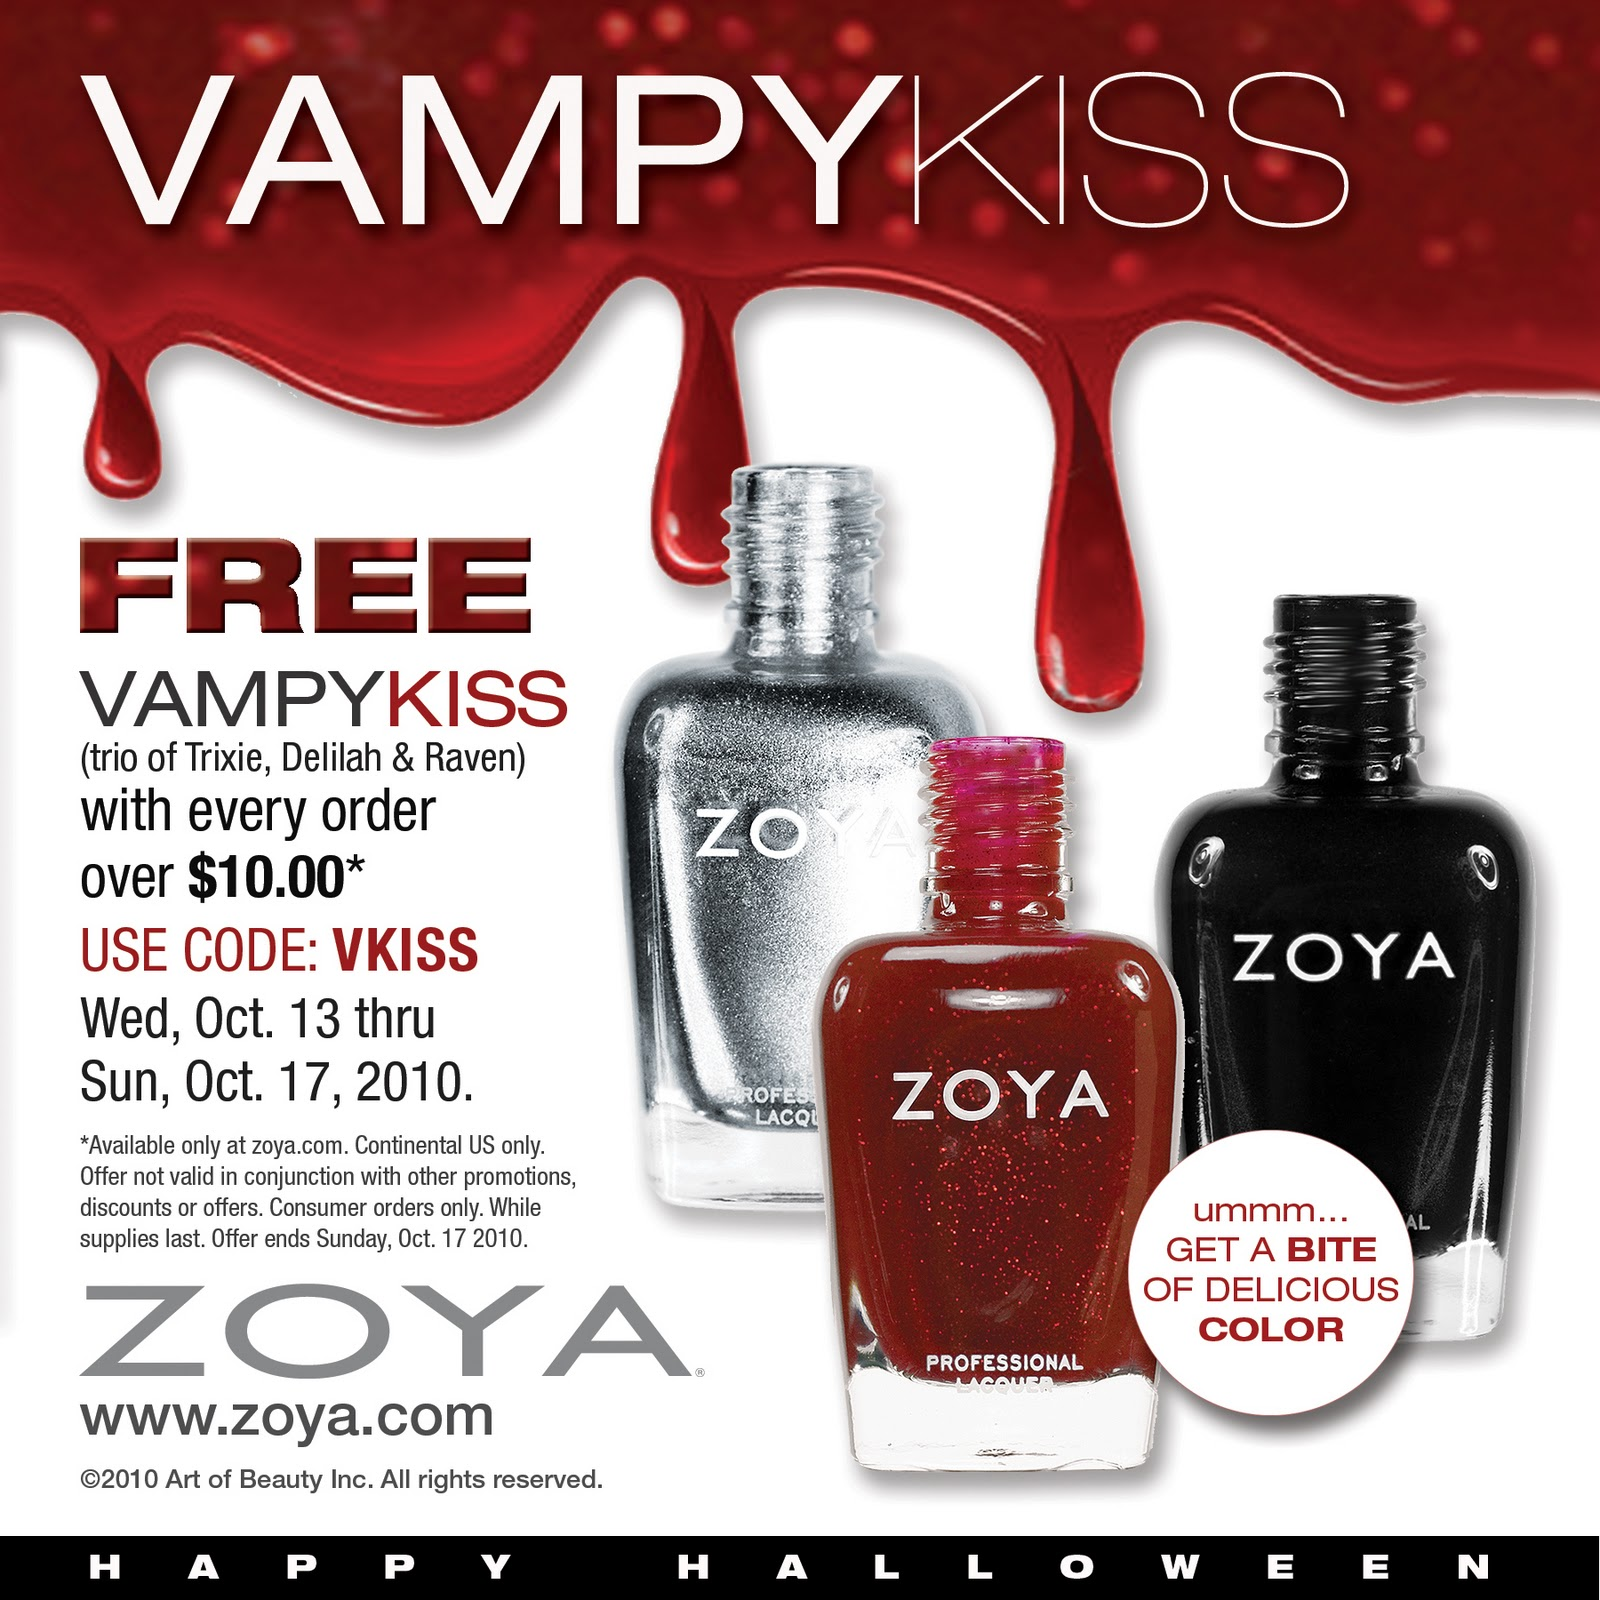 Details: Purchase one mini Color Lock System ($20 for carrying case and 1 - 1oz Zoya Remove Plus; 1 - oz Zoya Anchor Base Coat; 1 - oz Zoya Zoya Armor Top Coat; 1 - oz Zoya Fast Drops Polish Drying Drops) and get one free creme and one free fleck coat and FREE SHIPPING. Choose from Megan or Kristen polish and Maisie Fleck or Chloe Fleck.